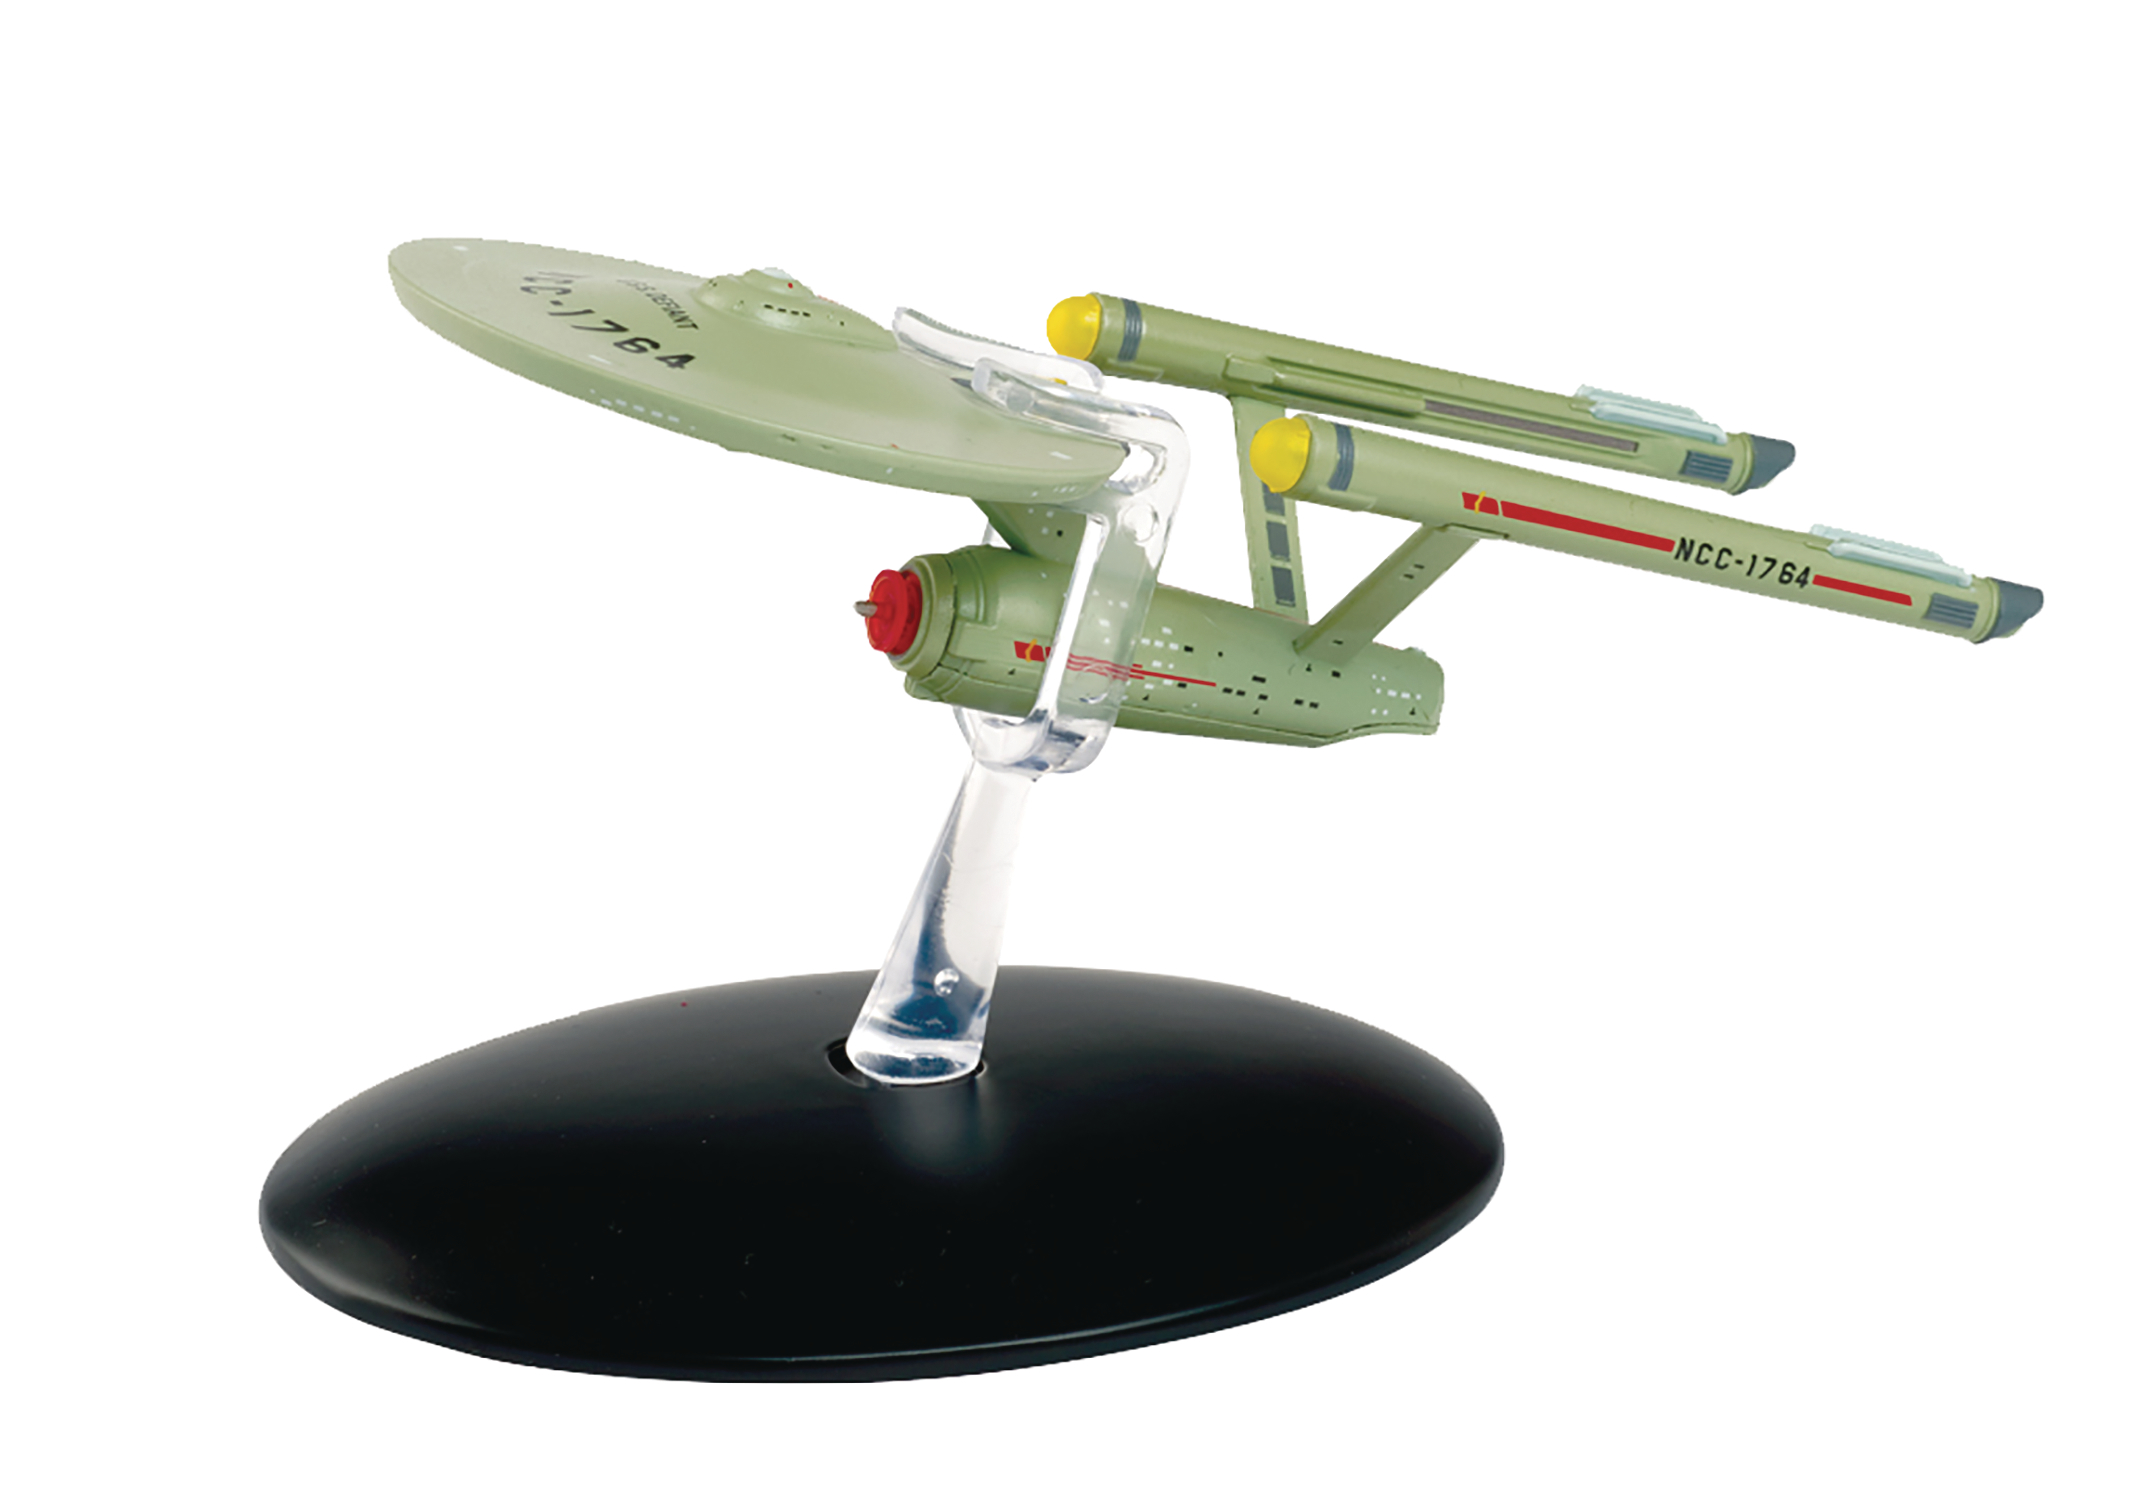 STAR TREK STARSHIPS FIG MAG BONUS #6 USS DEFIANT GID INTERPH